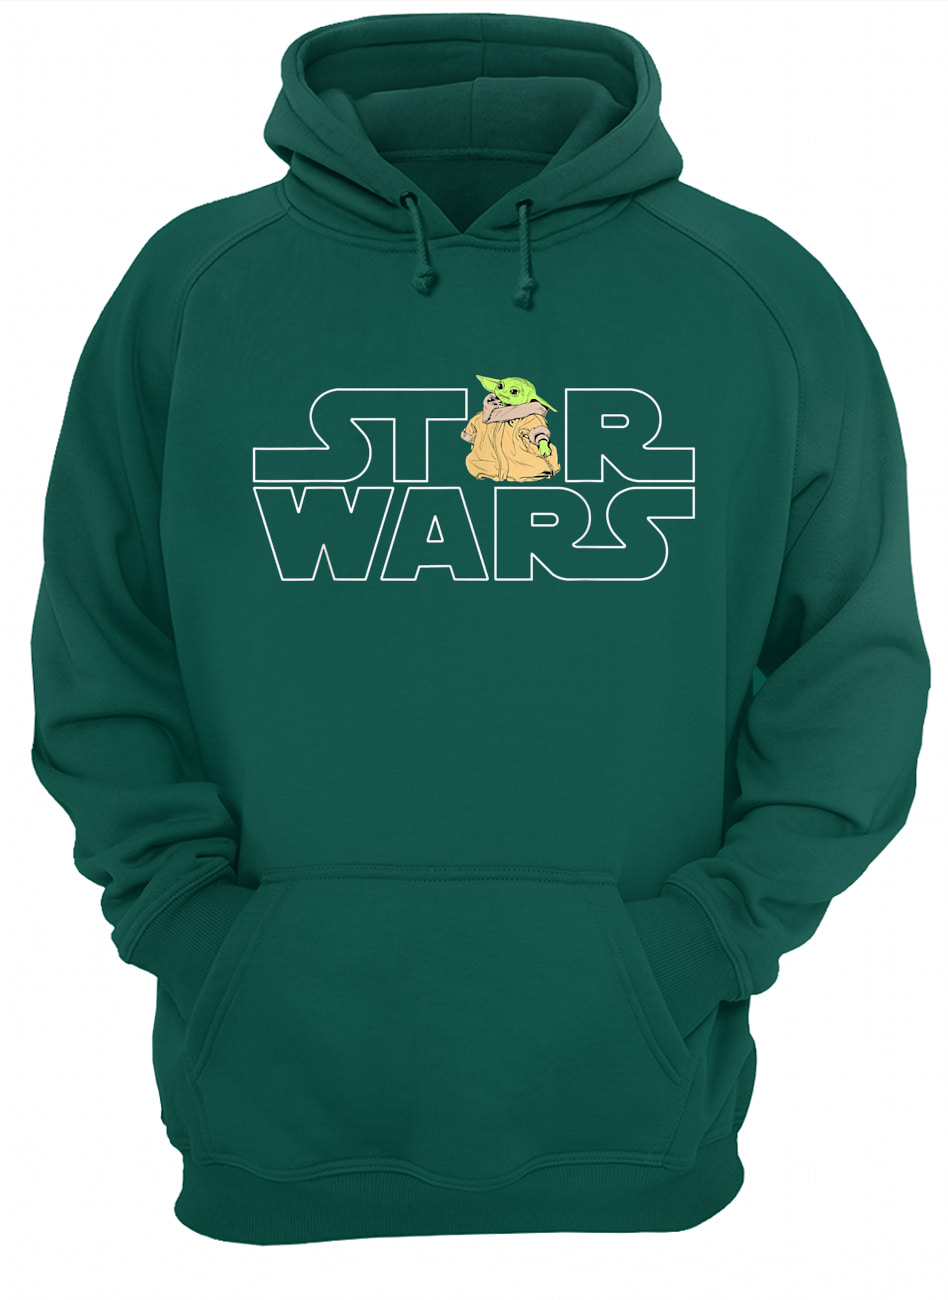 Star wars logo and the child from the mandalorian hoodie